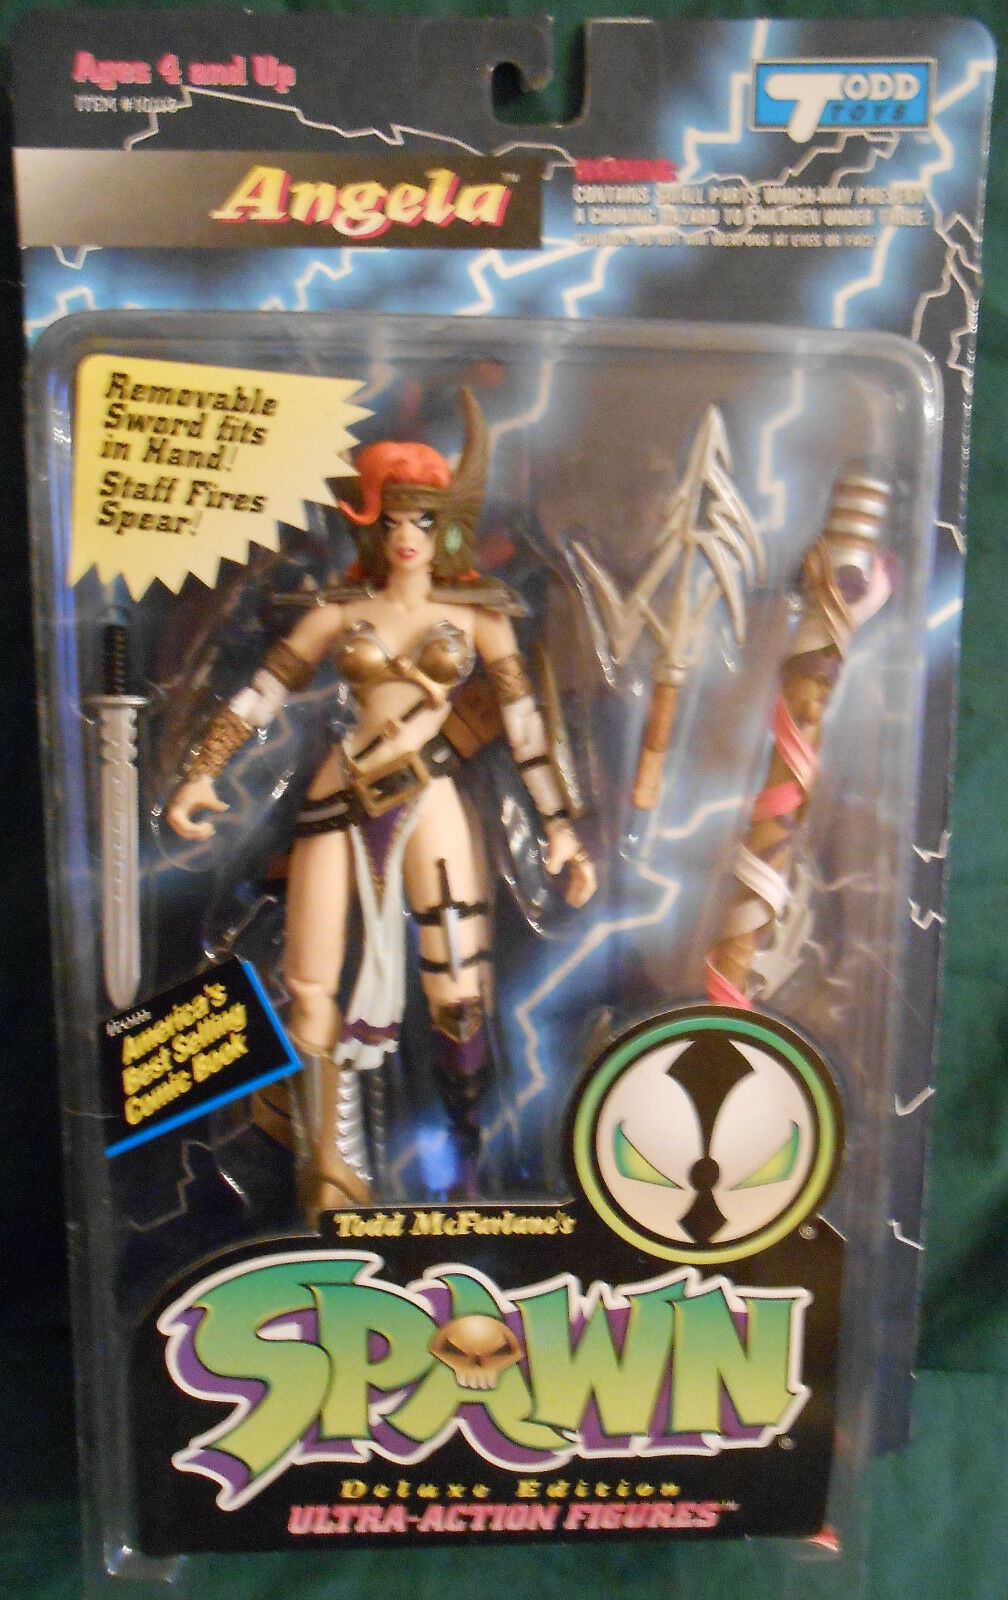 Angela Deluxe Edition Spawn  McFarlane  excellent prix